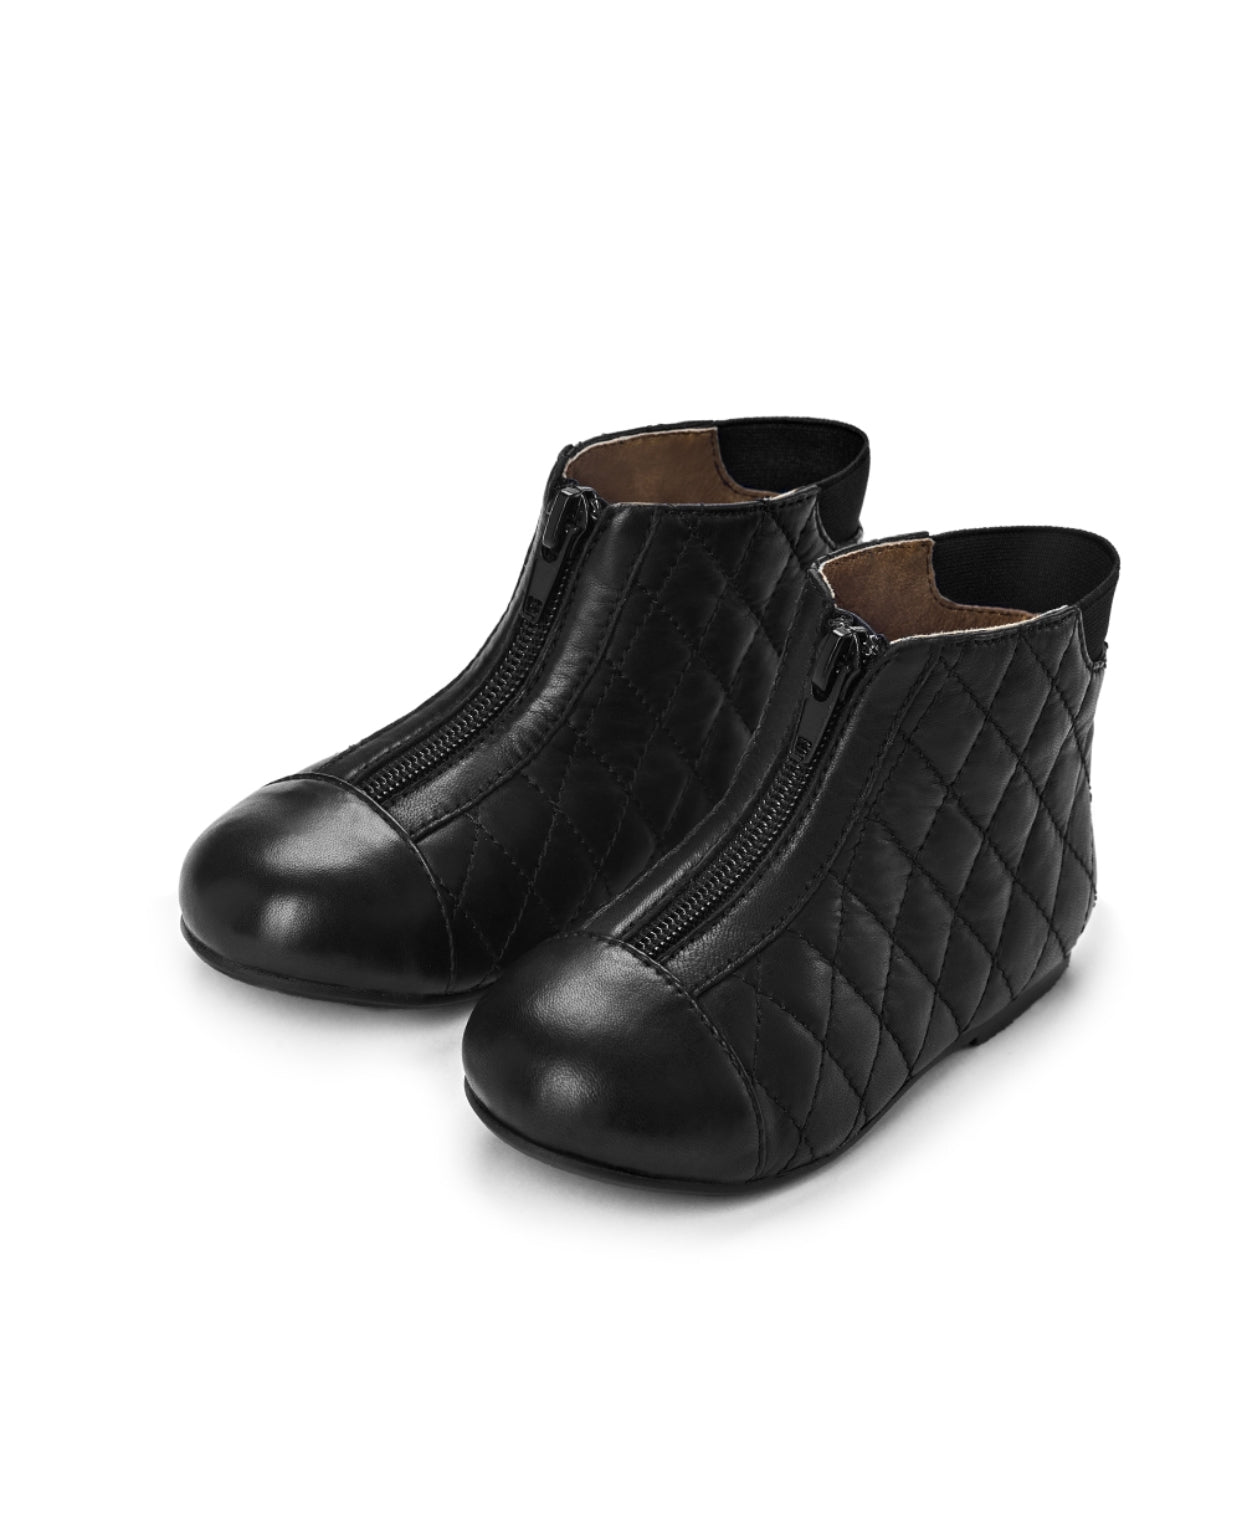 Age of Innocence Nicole 2.0(Wool lining)boots in Black